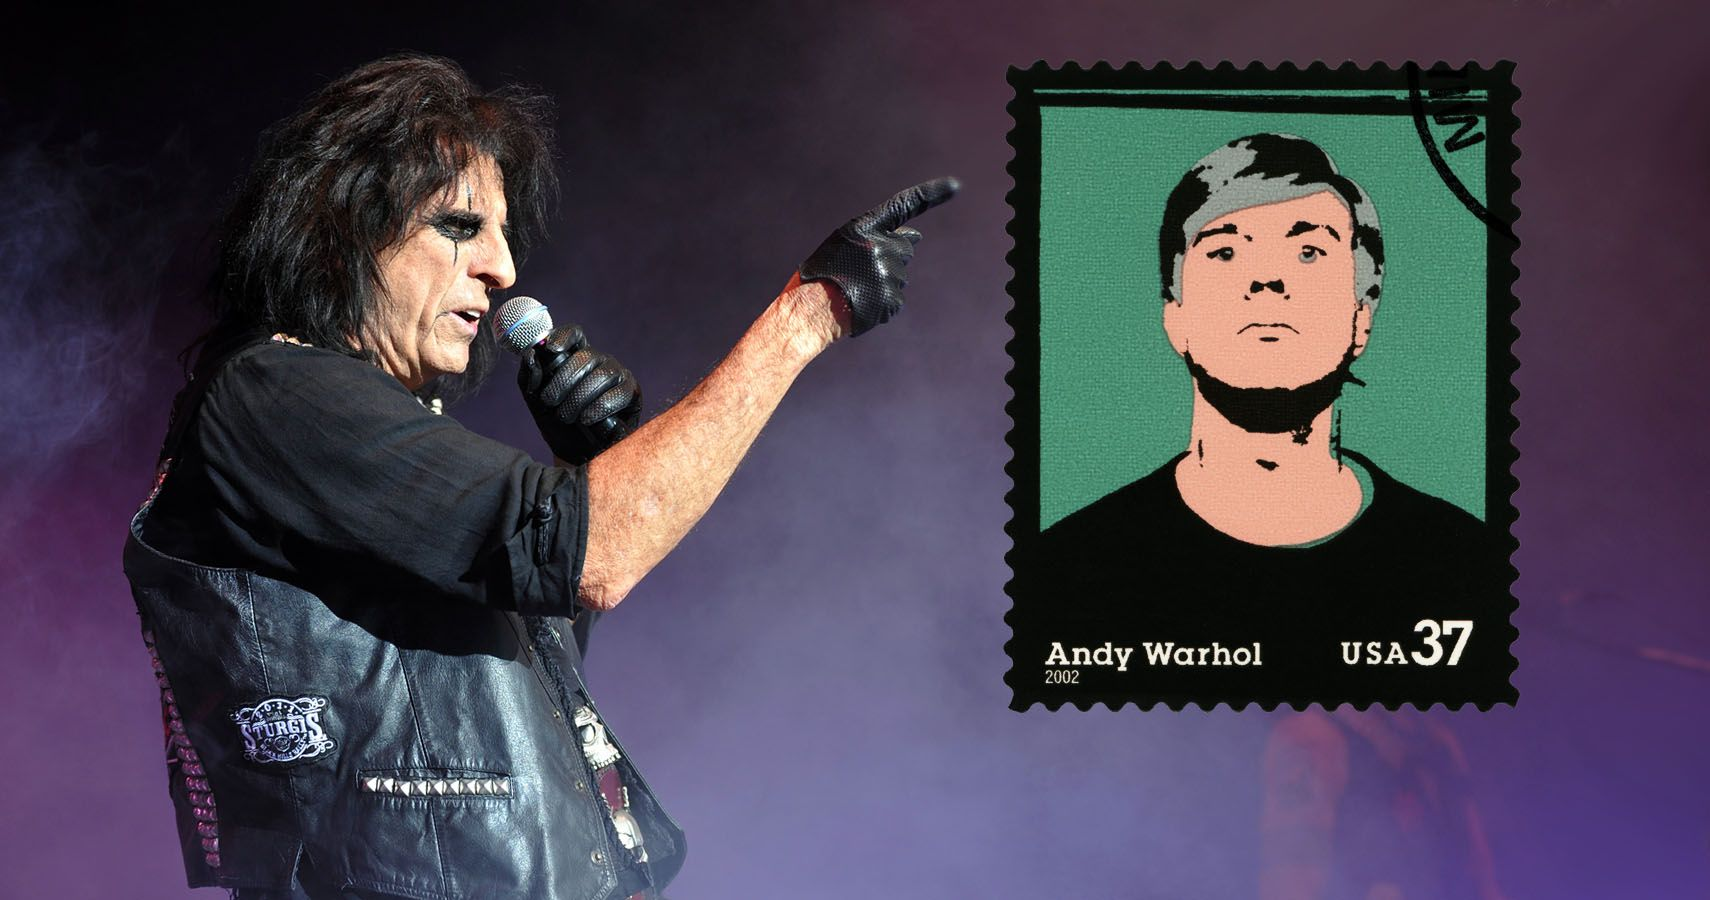 Alice Cooper To Auction Rare Andy Warhol Painting Through Arizona Gallery